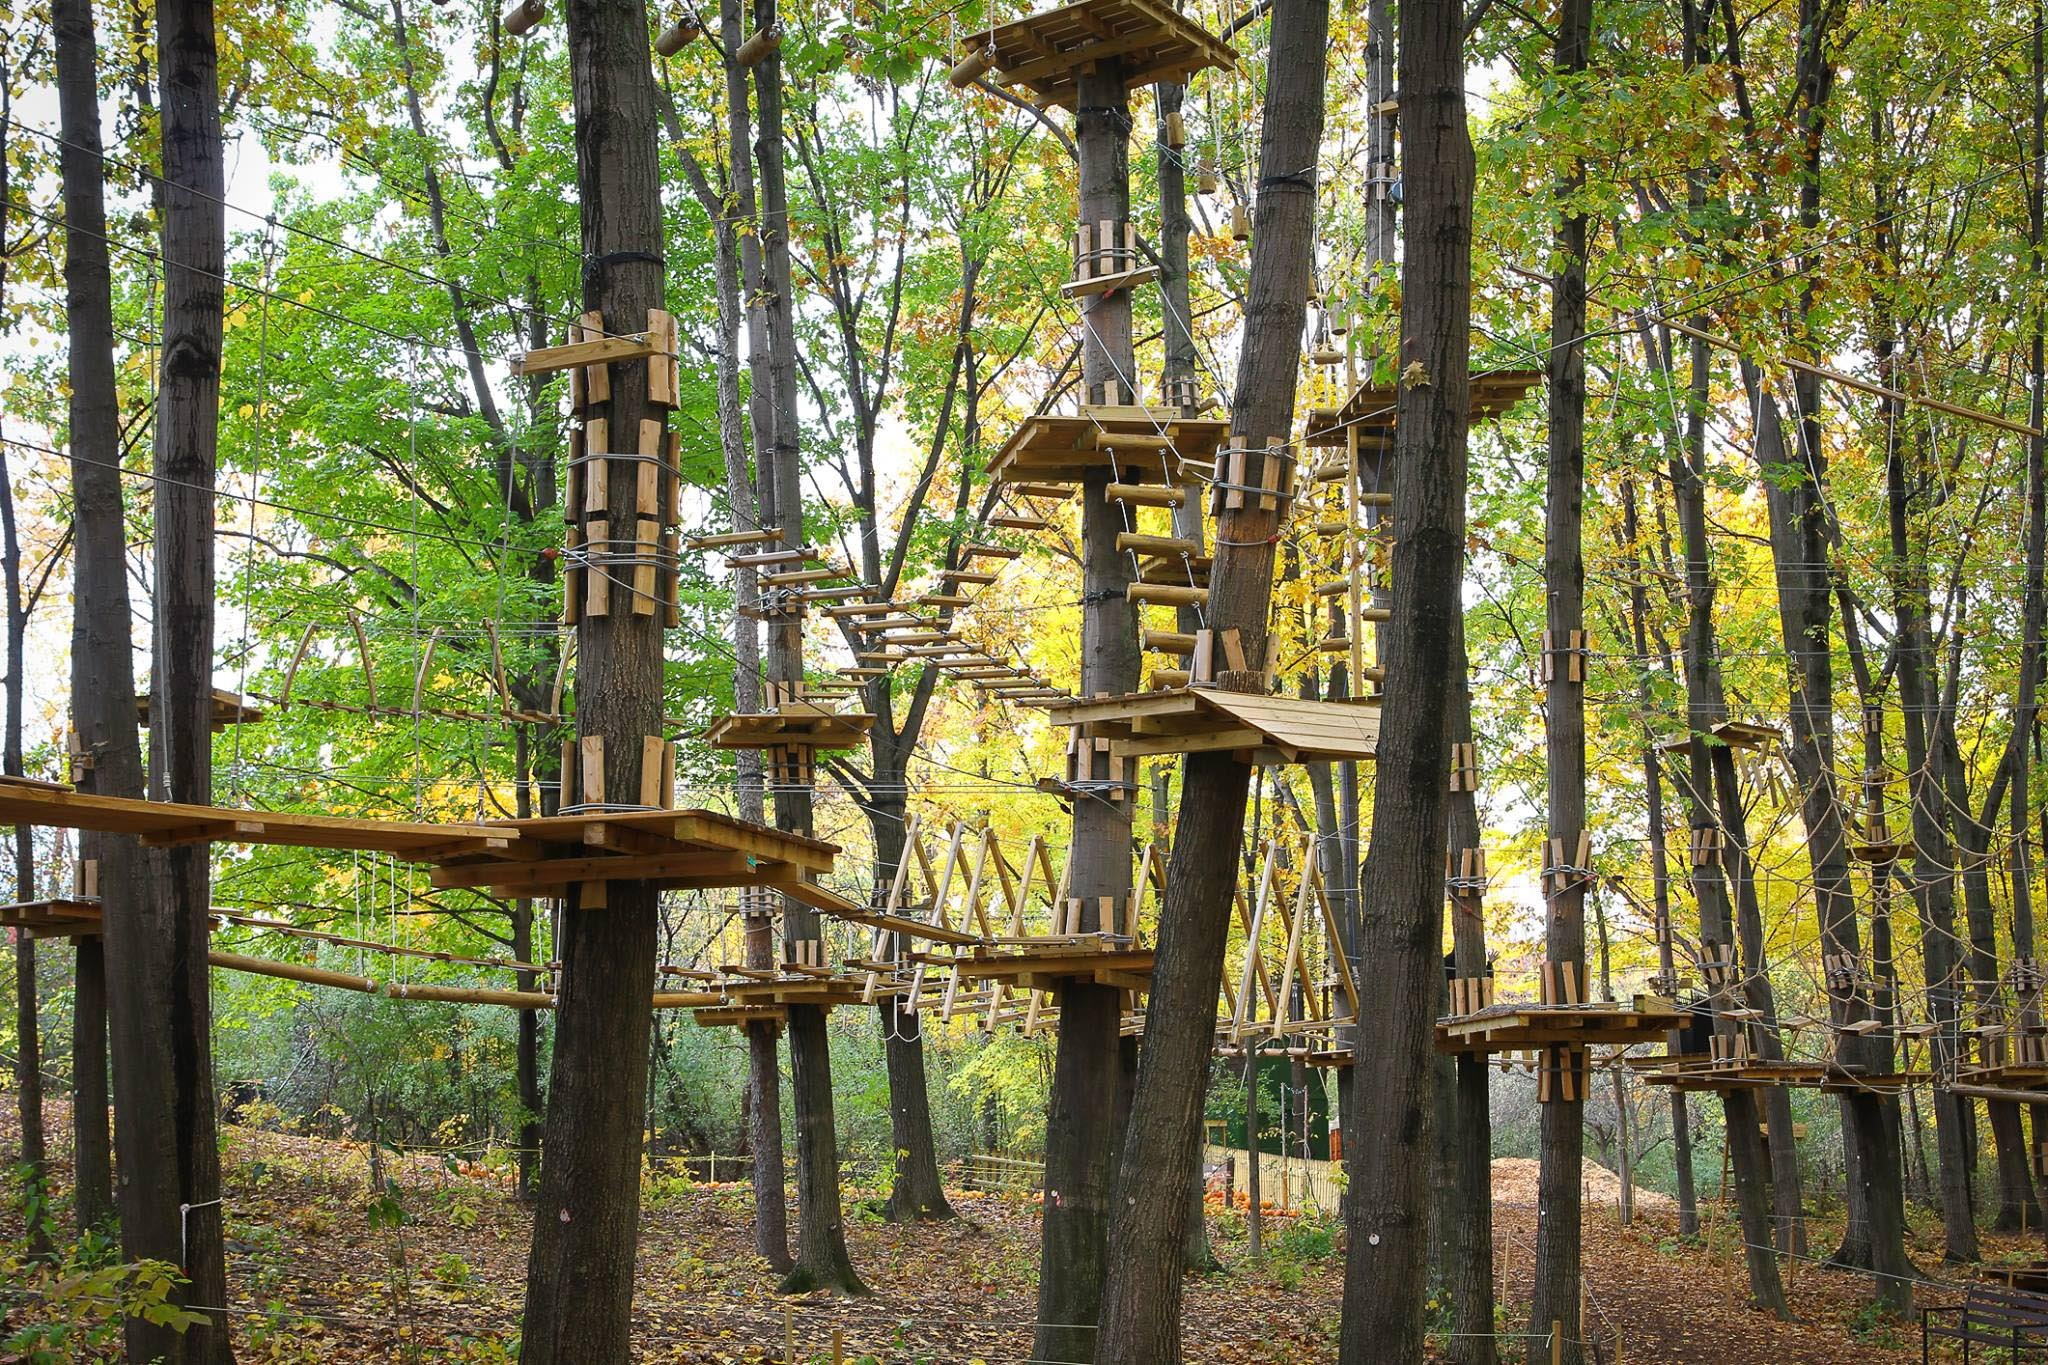 Source: Frankenmuth Aerial Park